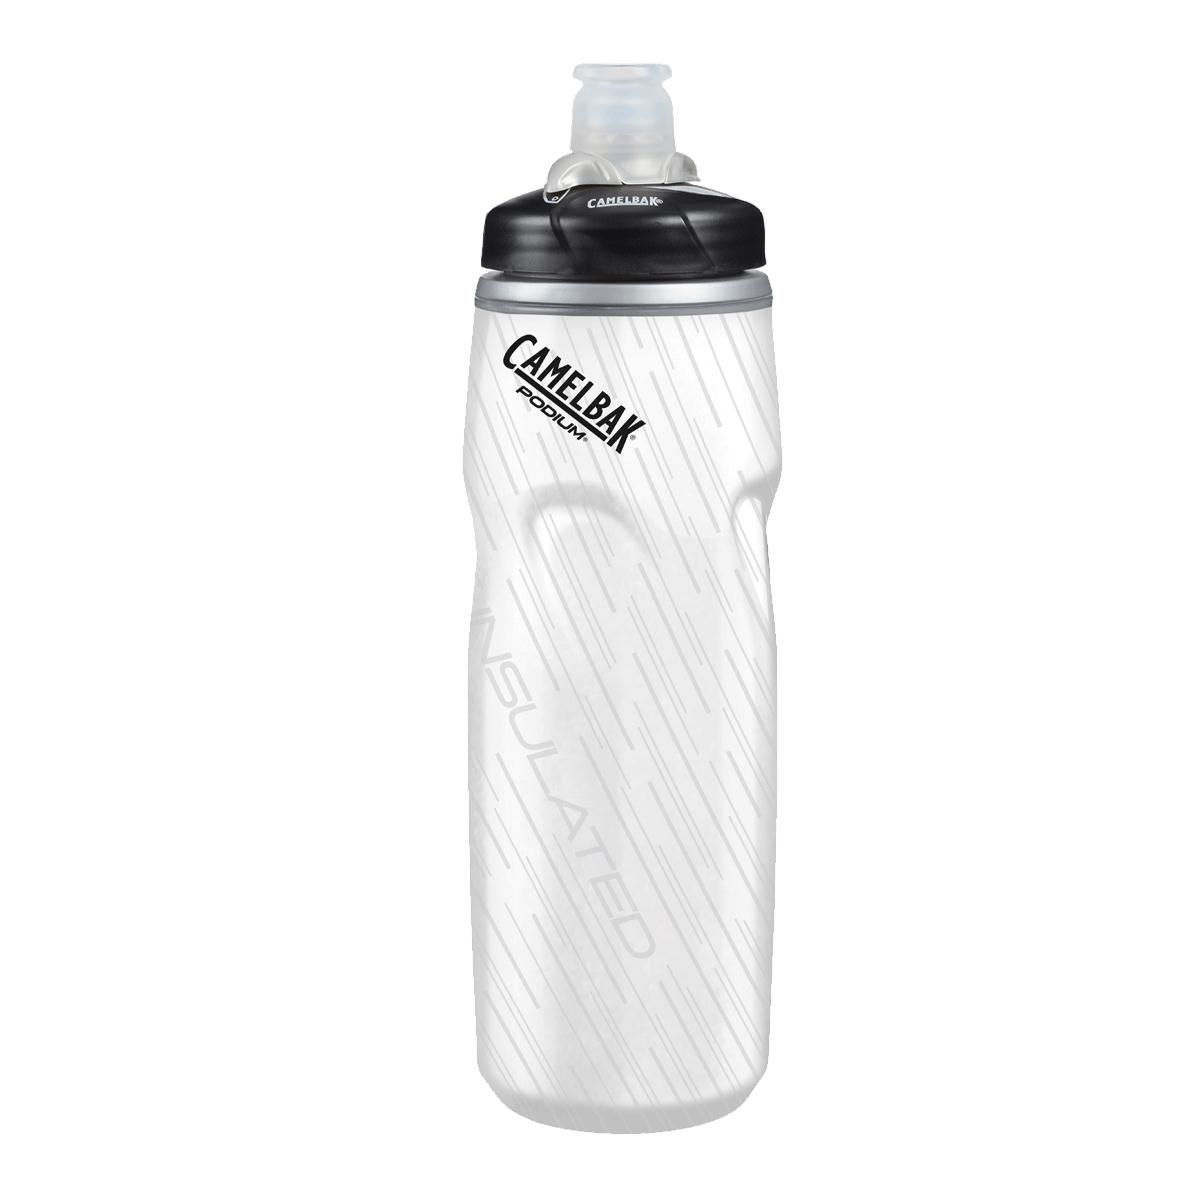 Bidón Camelbak Custom Print Podium Big Chill (0,7 L aprox) - Bidones